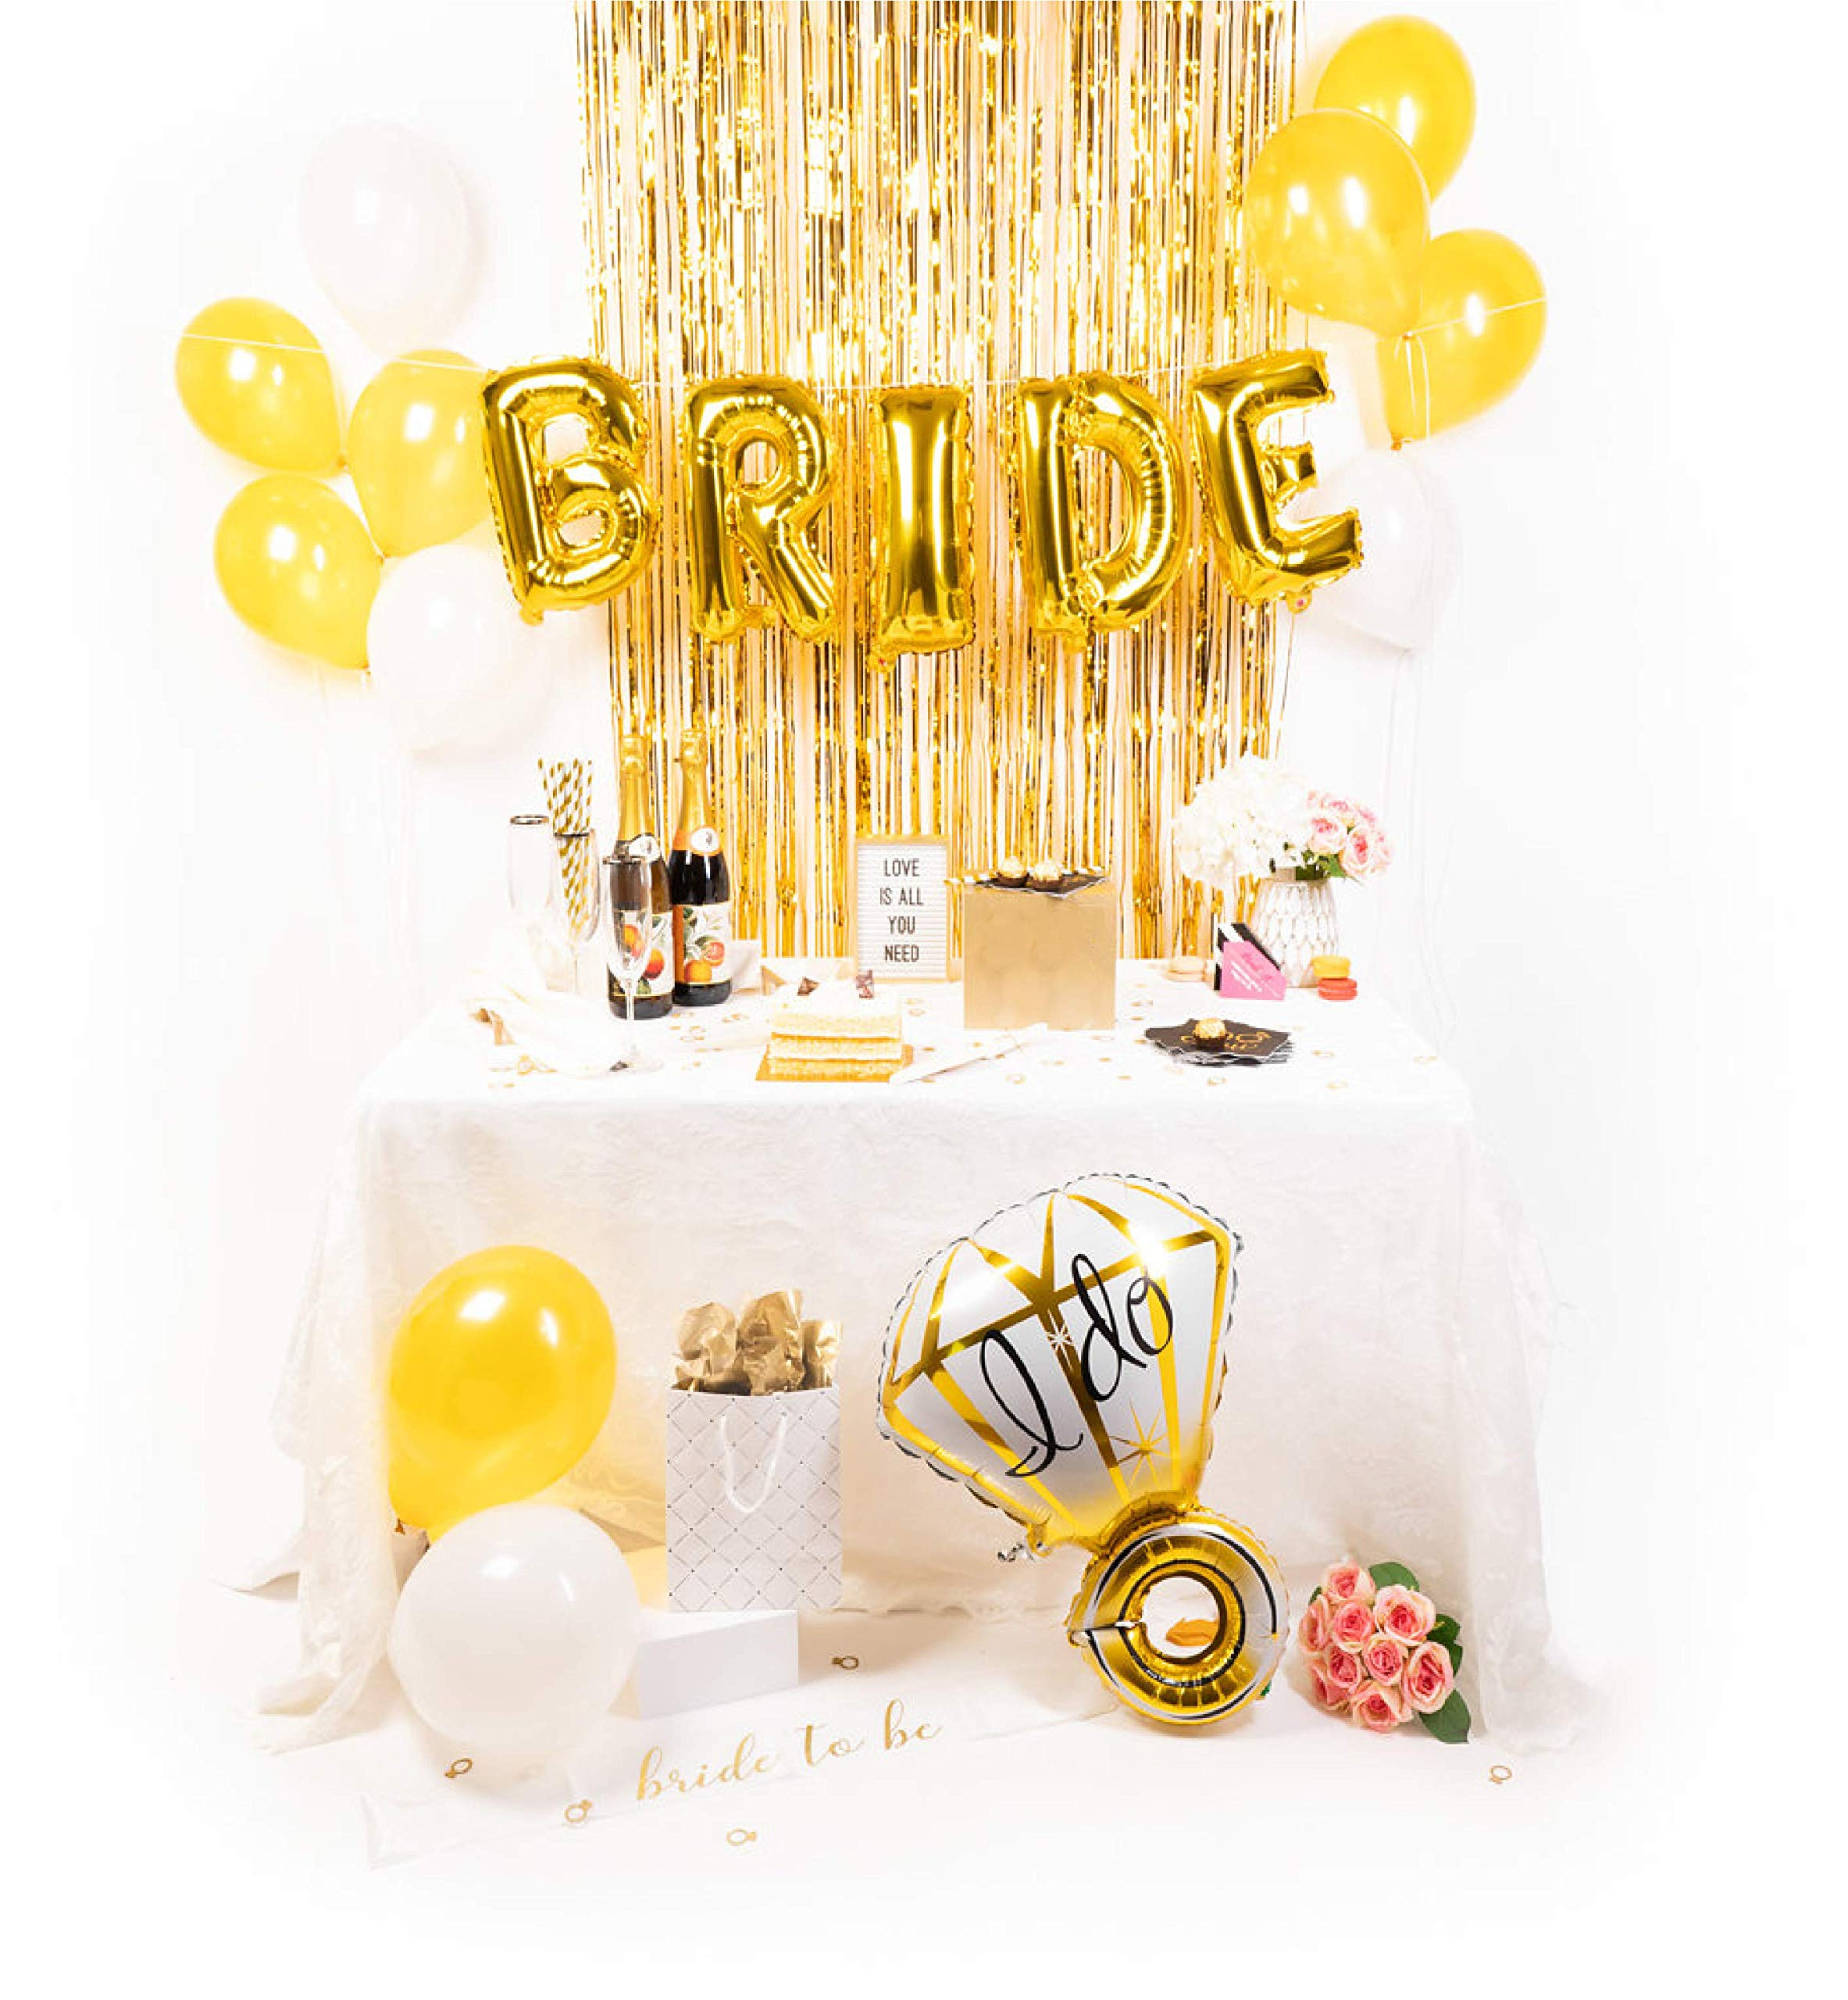 Gold Bridal Shower Decorations Kit | Bachelorette Party Supplies | Balloons | Sash | Tinsel Backdrop by Bridal Station